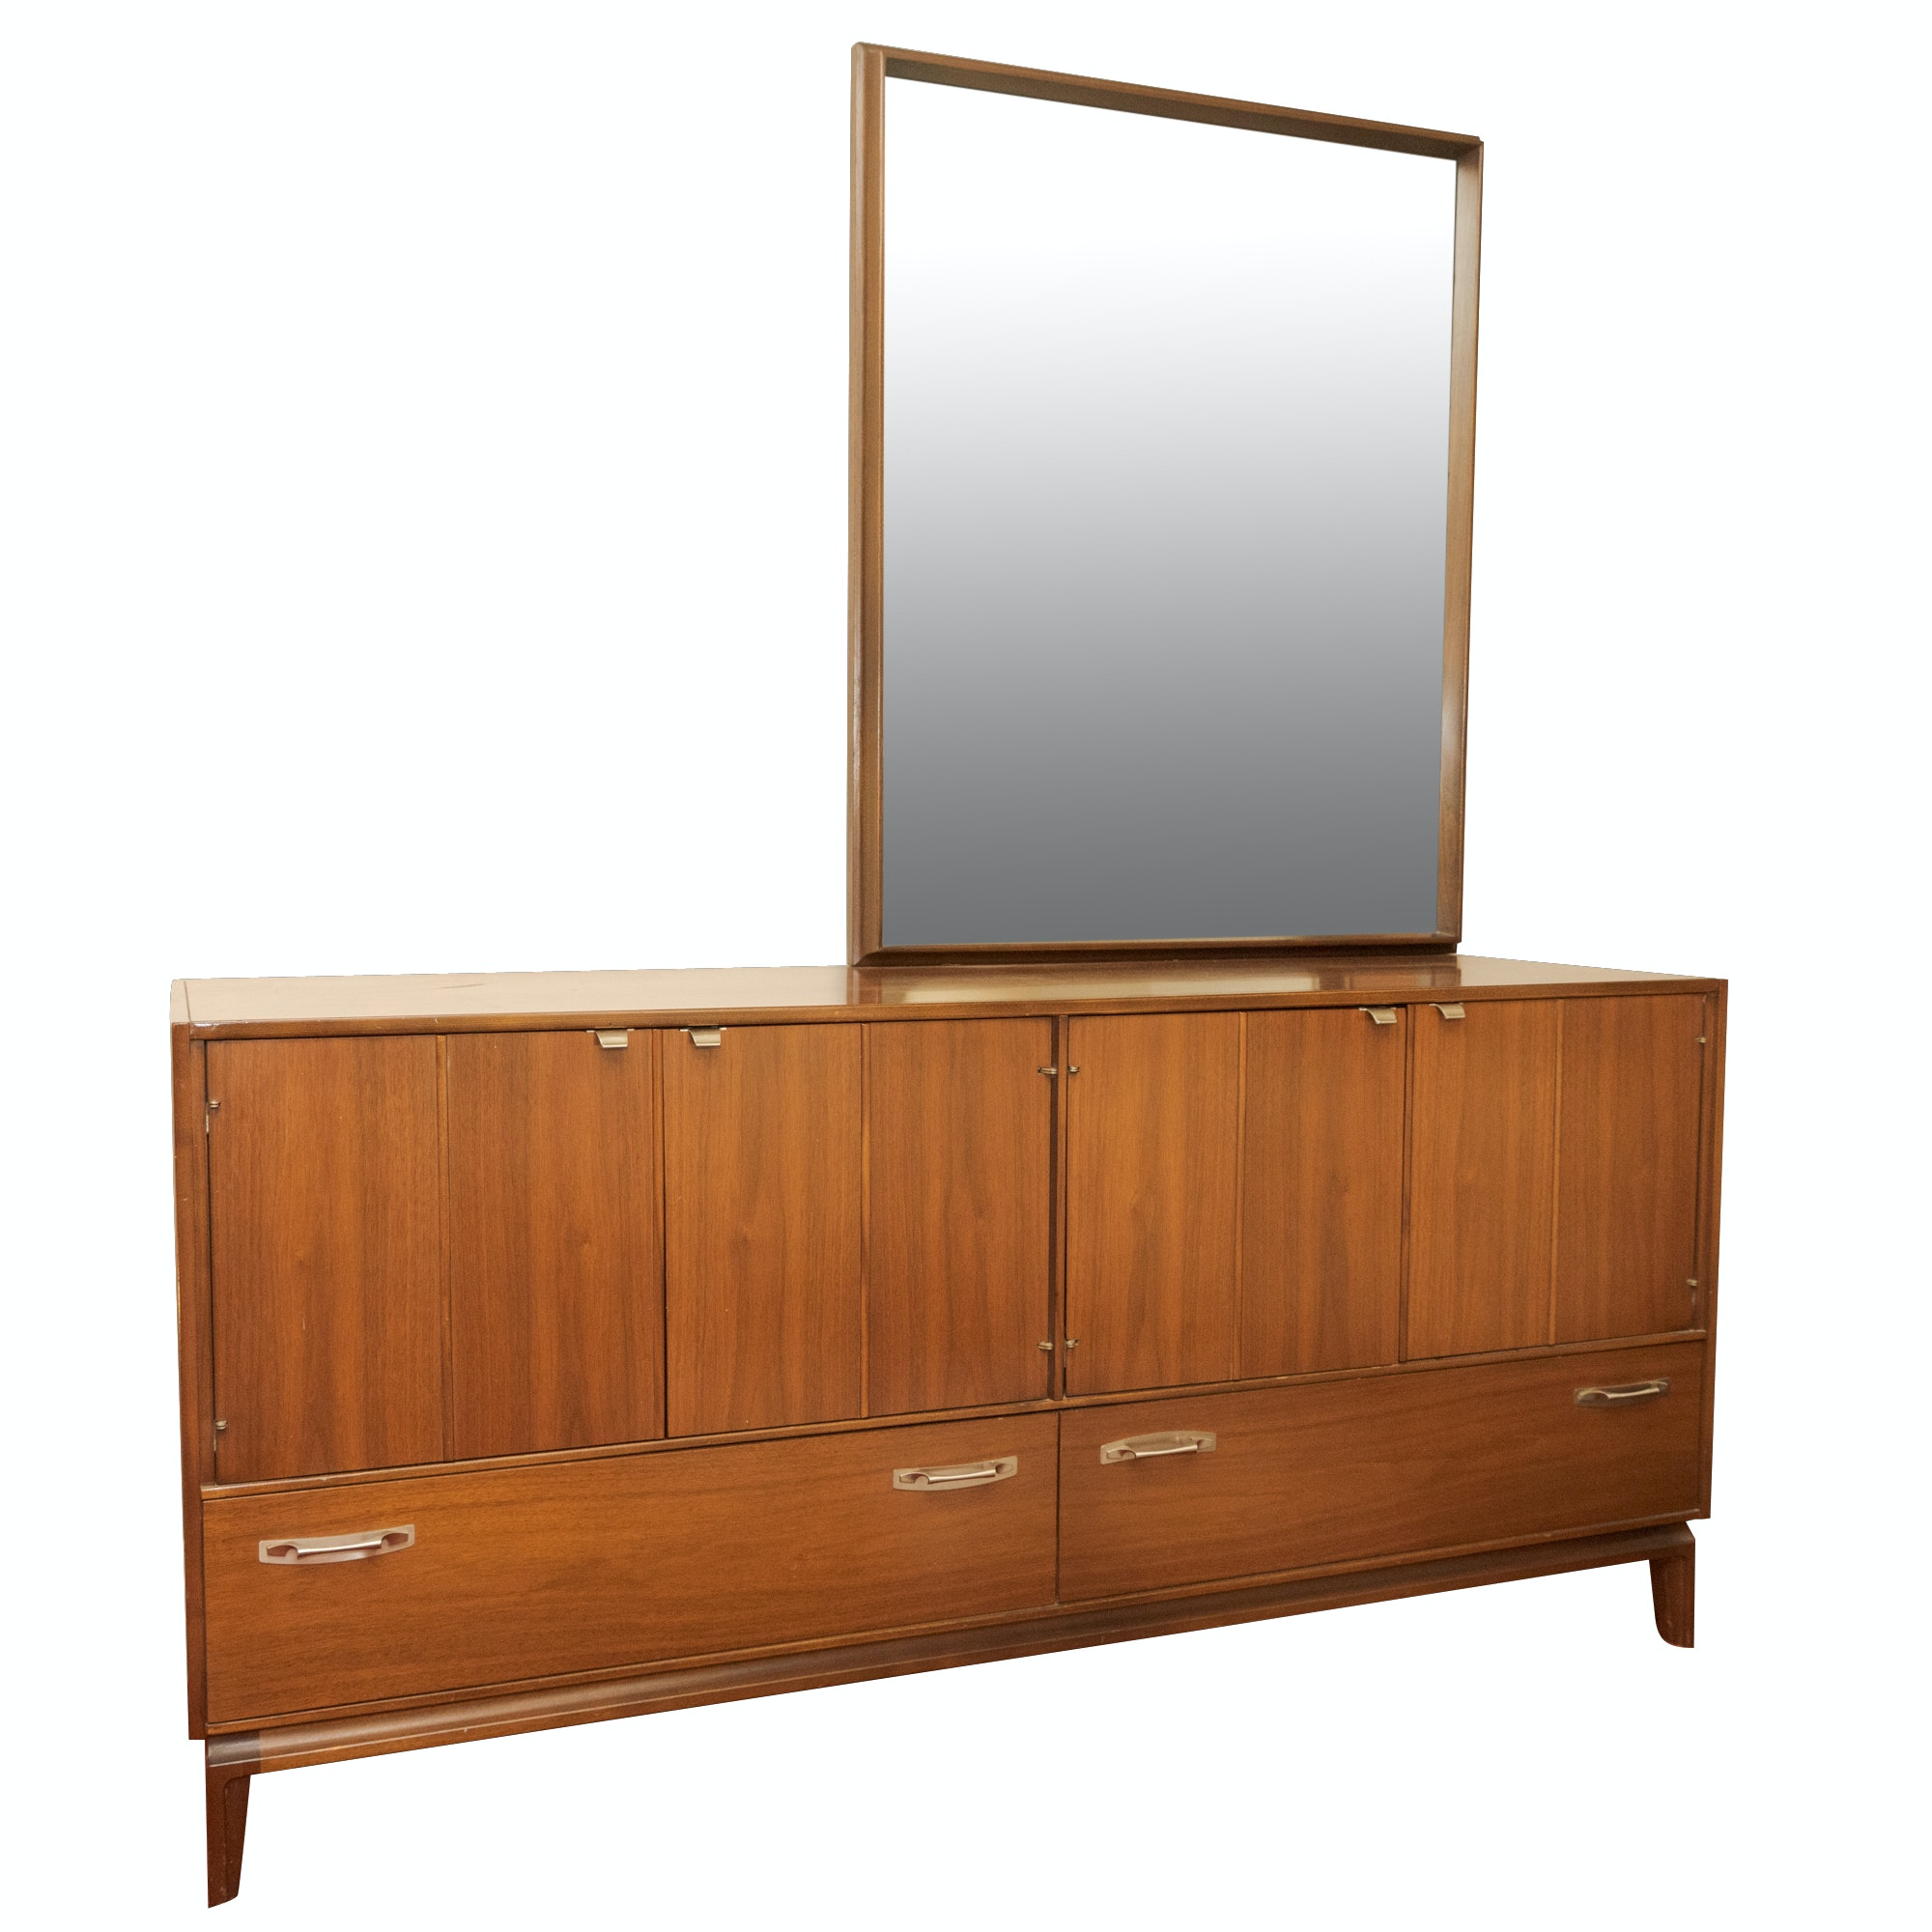 Mid Century Modern Walnut Dresser by Red Lion Table Company, Mid-20th Century